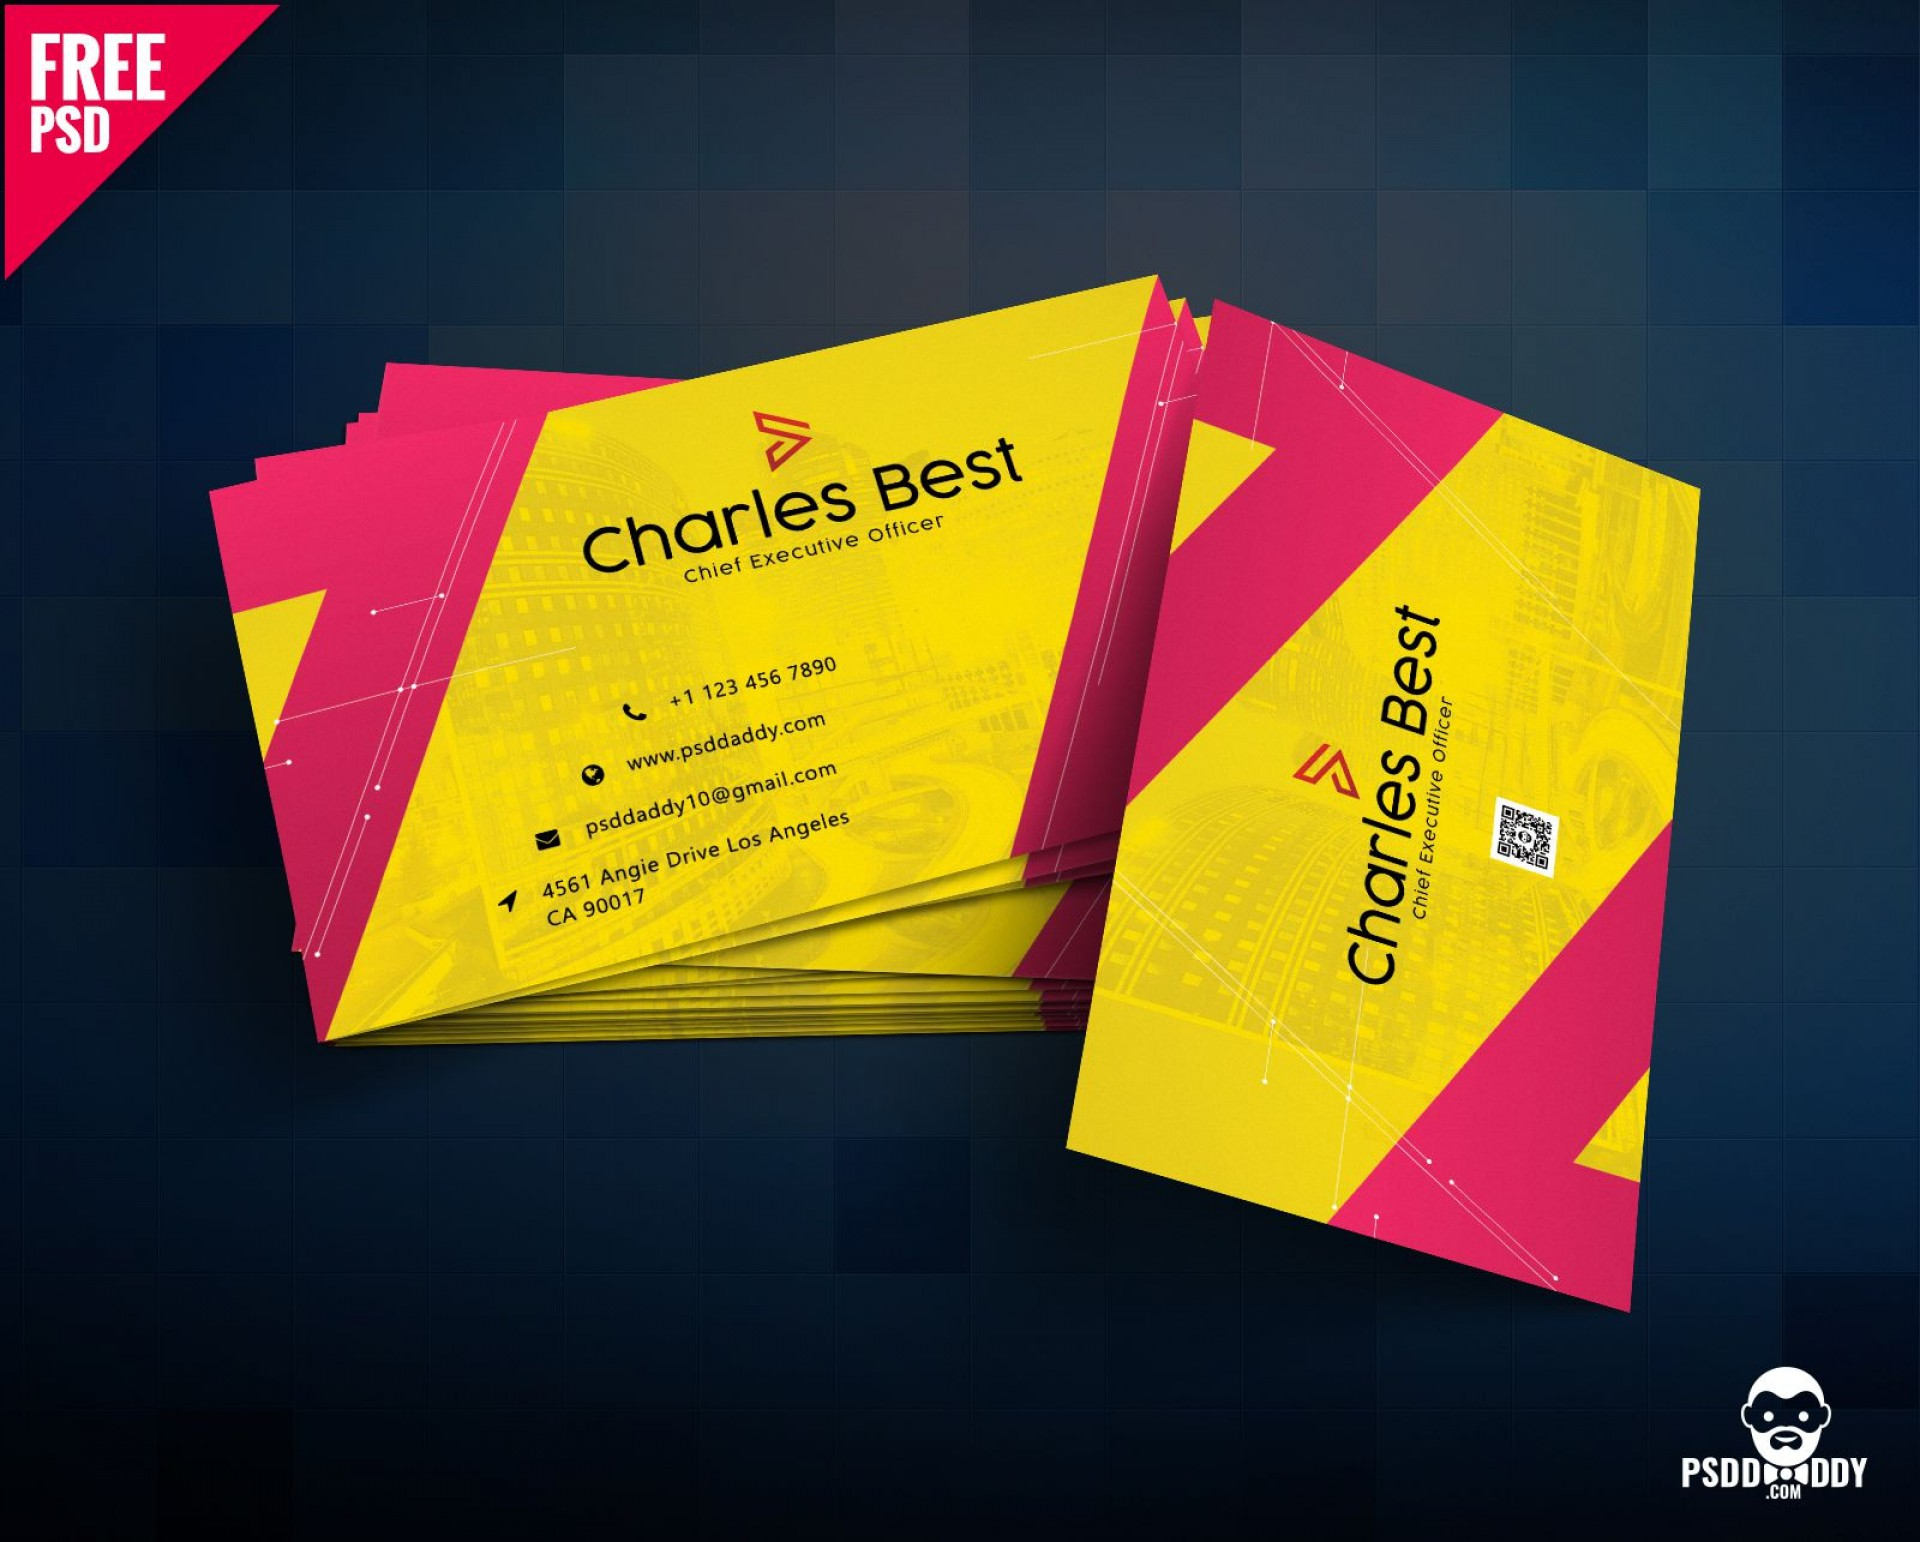 006 Top Psd Busines Card Template High Resolution  With Bleed And Crop Mark Vistaprint Free1920